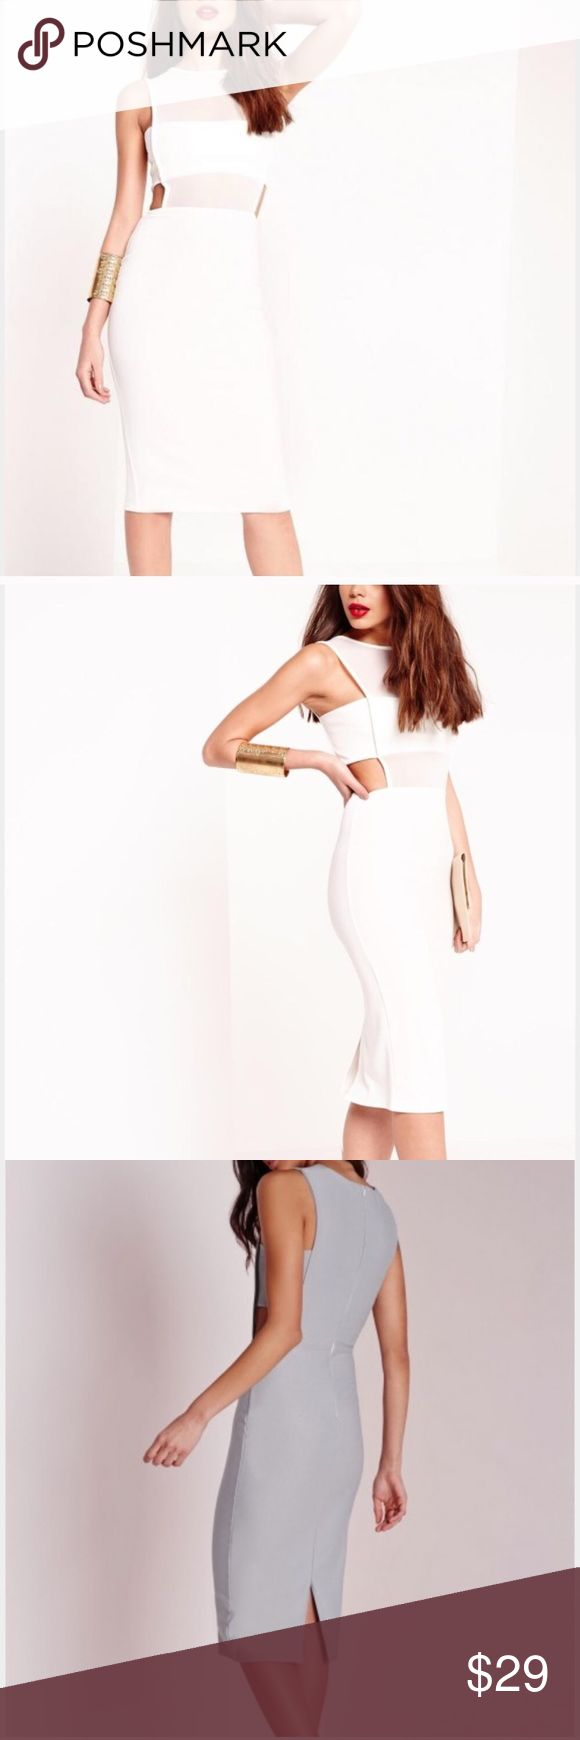 Missguided crepe midi white cutout dress with mesh Amazing Missguided white dress! So chic! Bought for my cocktail attire bridal shower but too big, I was hoping it tan snap but it's true to size 10. Enjoy! 💞 Missguided Dresses Midi